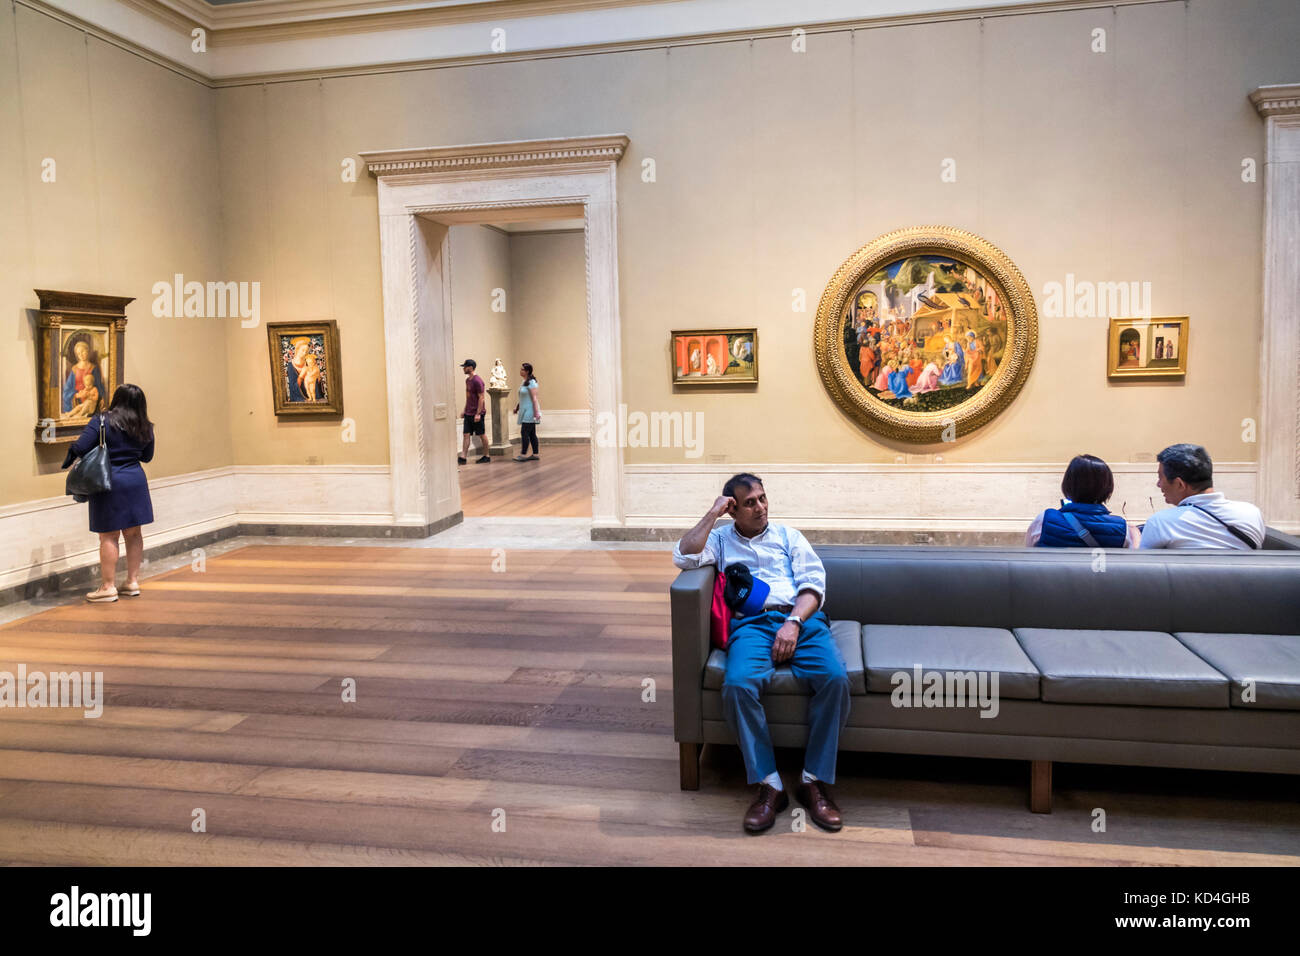 sofa art gallery silver grey what colour walls washington dc district of columbia national museum painting renaissance interior inside quattrocento fra filippo lippi asian man sitting